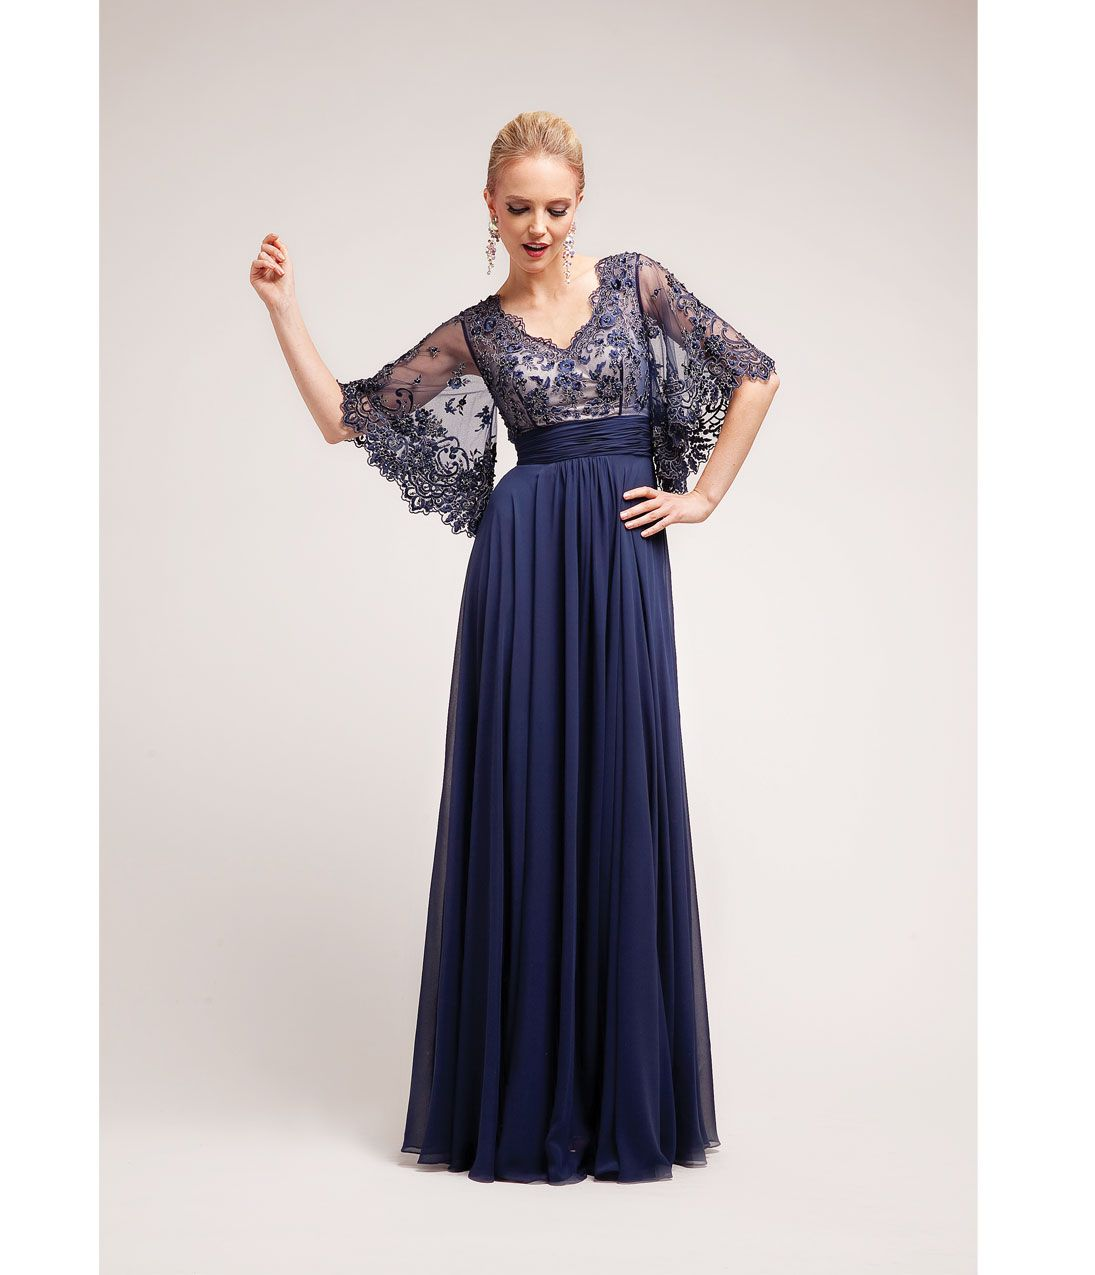 100 great gatsby prom dresses for sale midnight blue for Long sleeve lace wedding dresses for sale